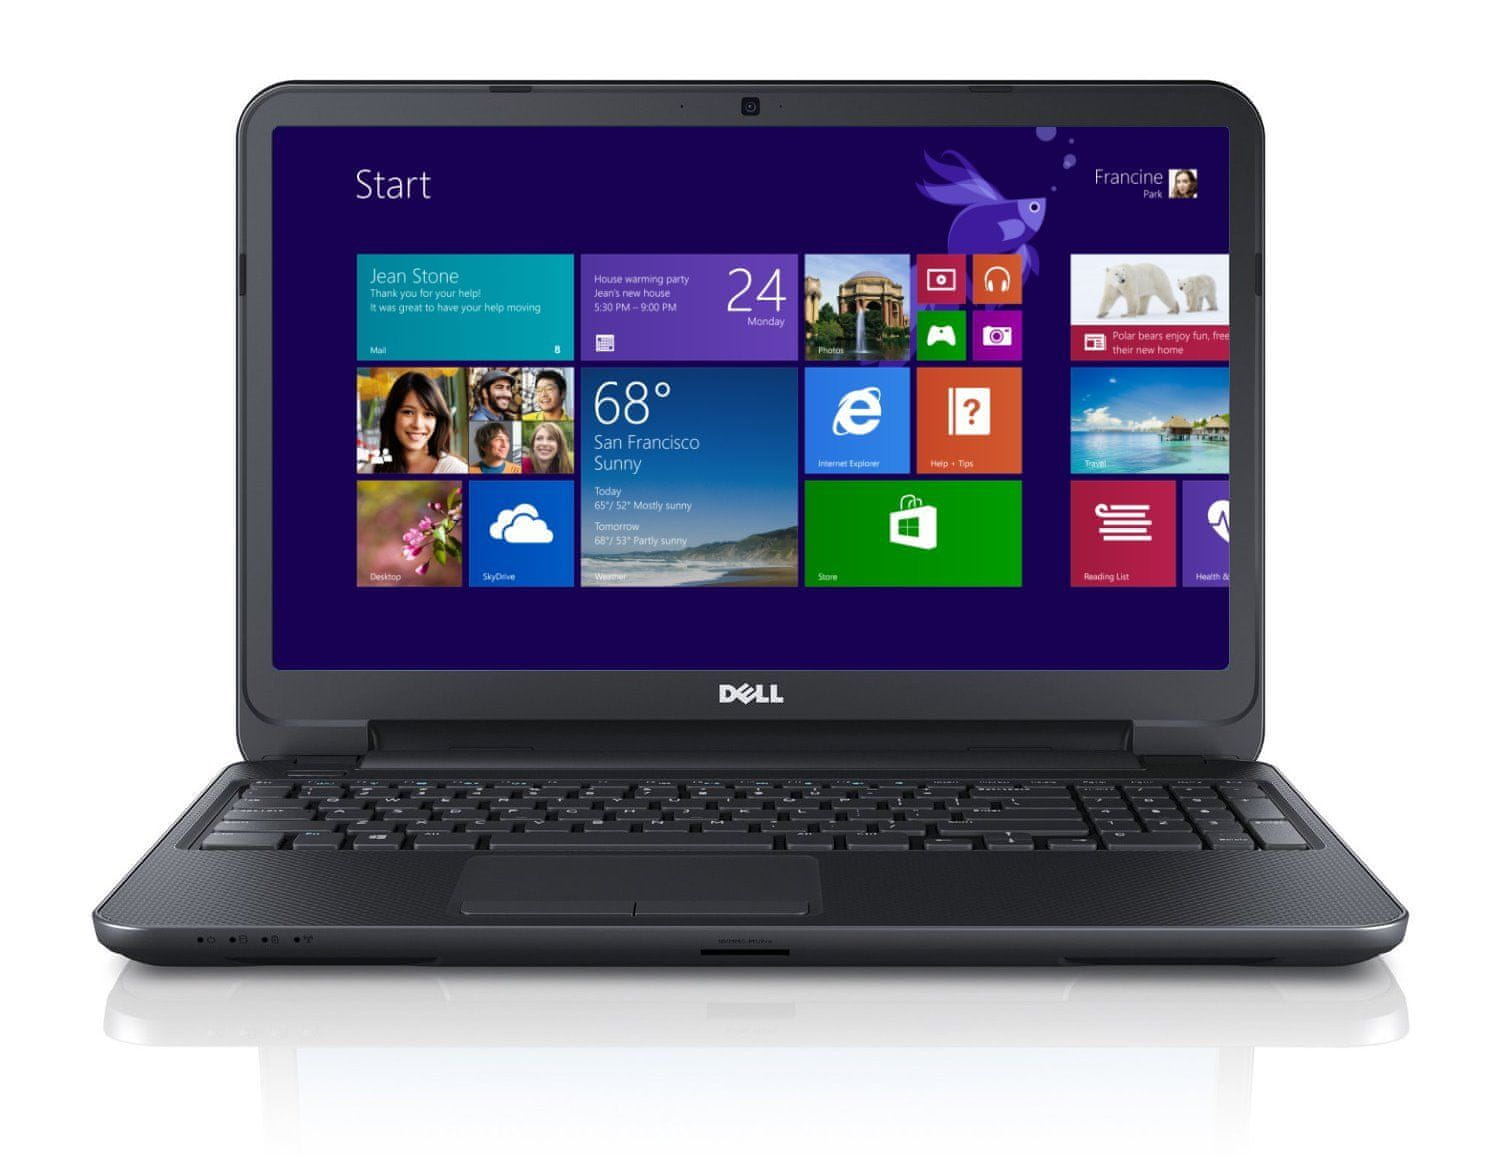 DELL Inspiron 15 (N13-3521-EP2)